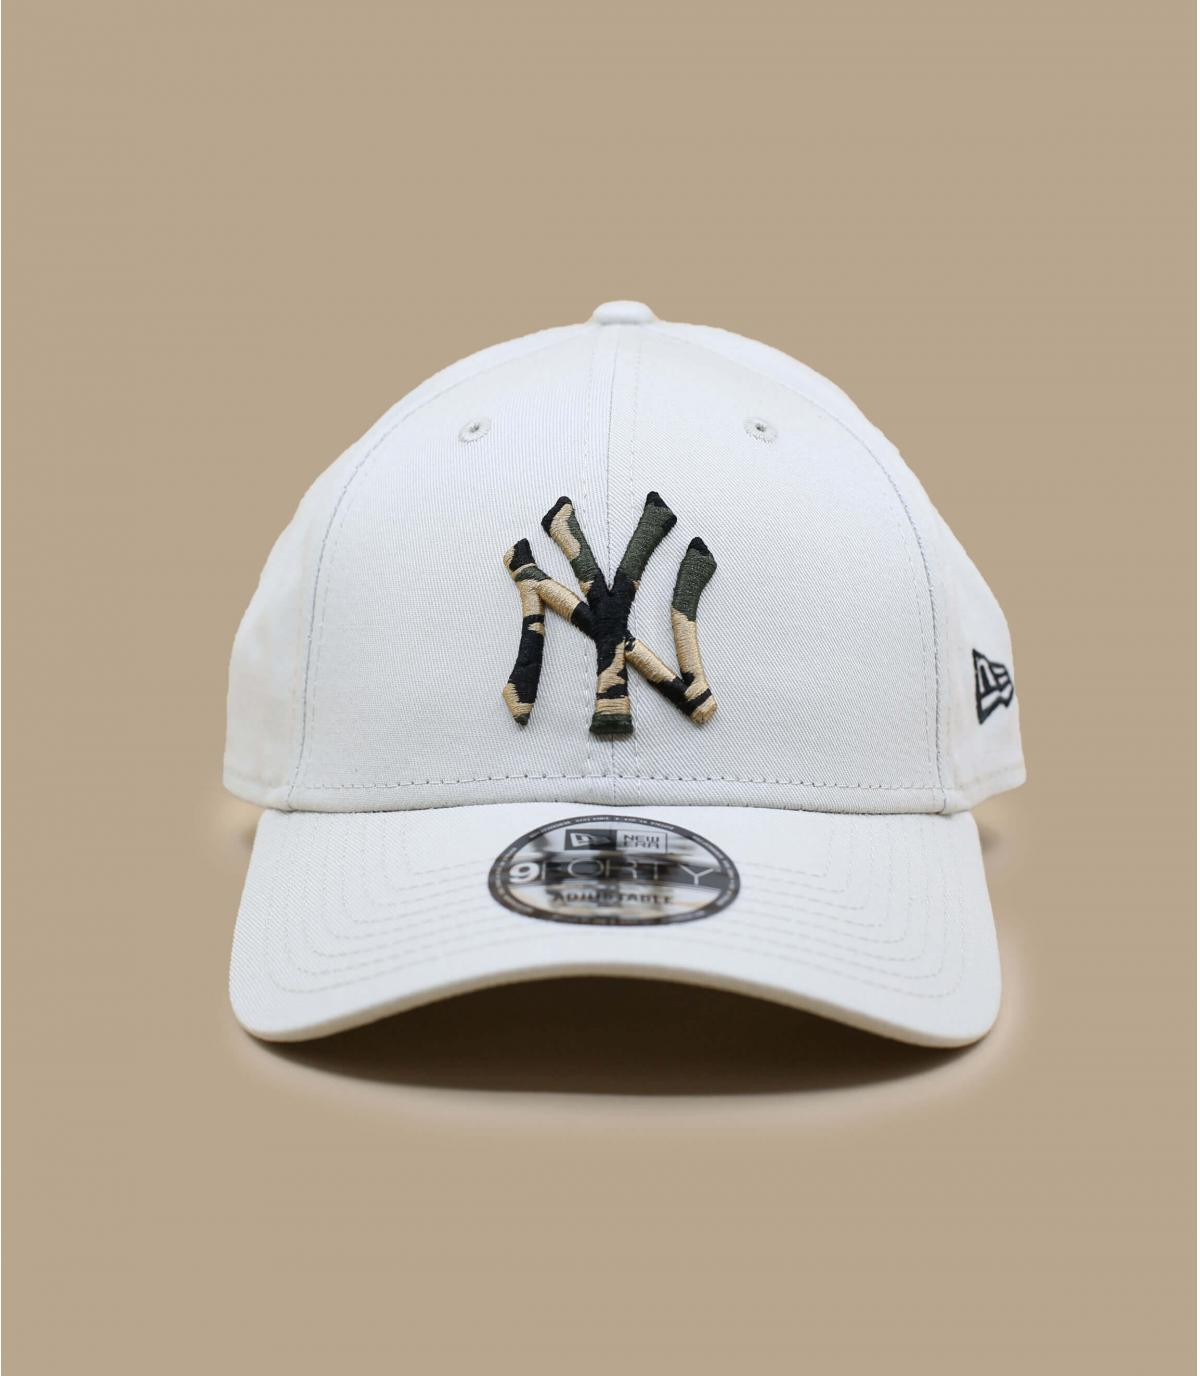 Détails Casquette Infill NY 940 stone - image 2